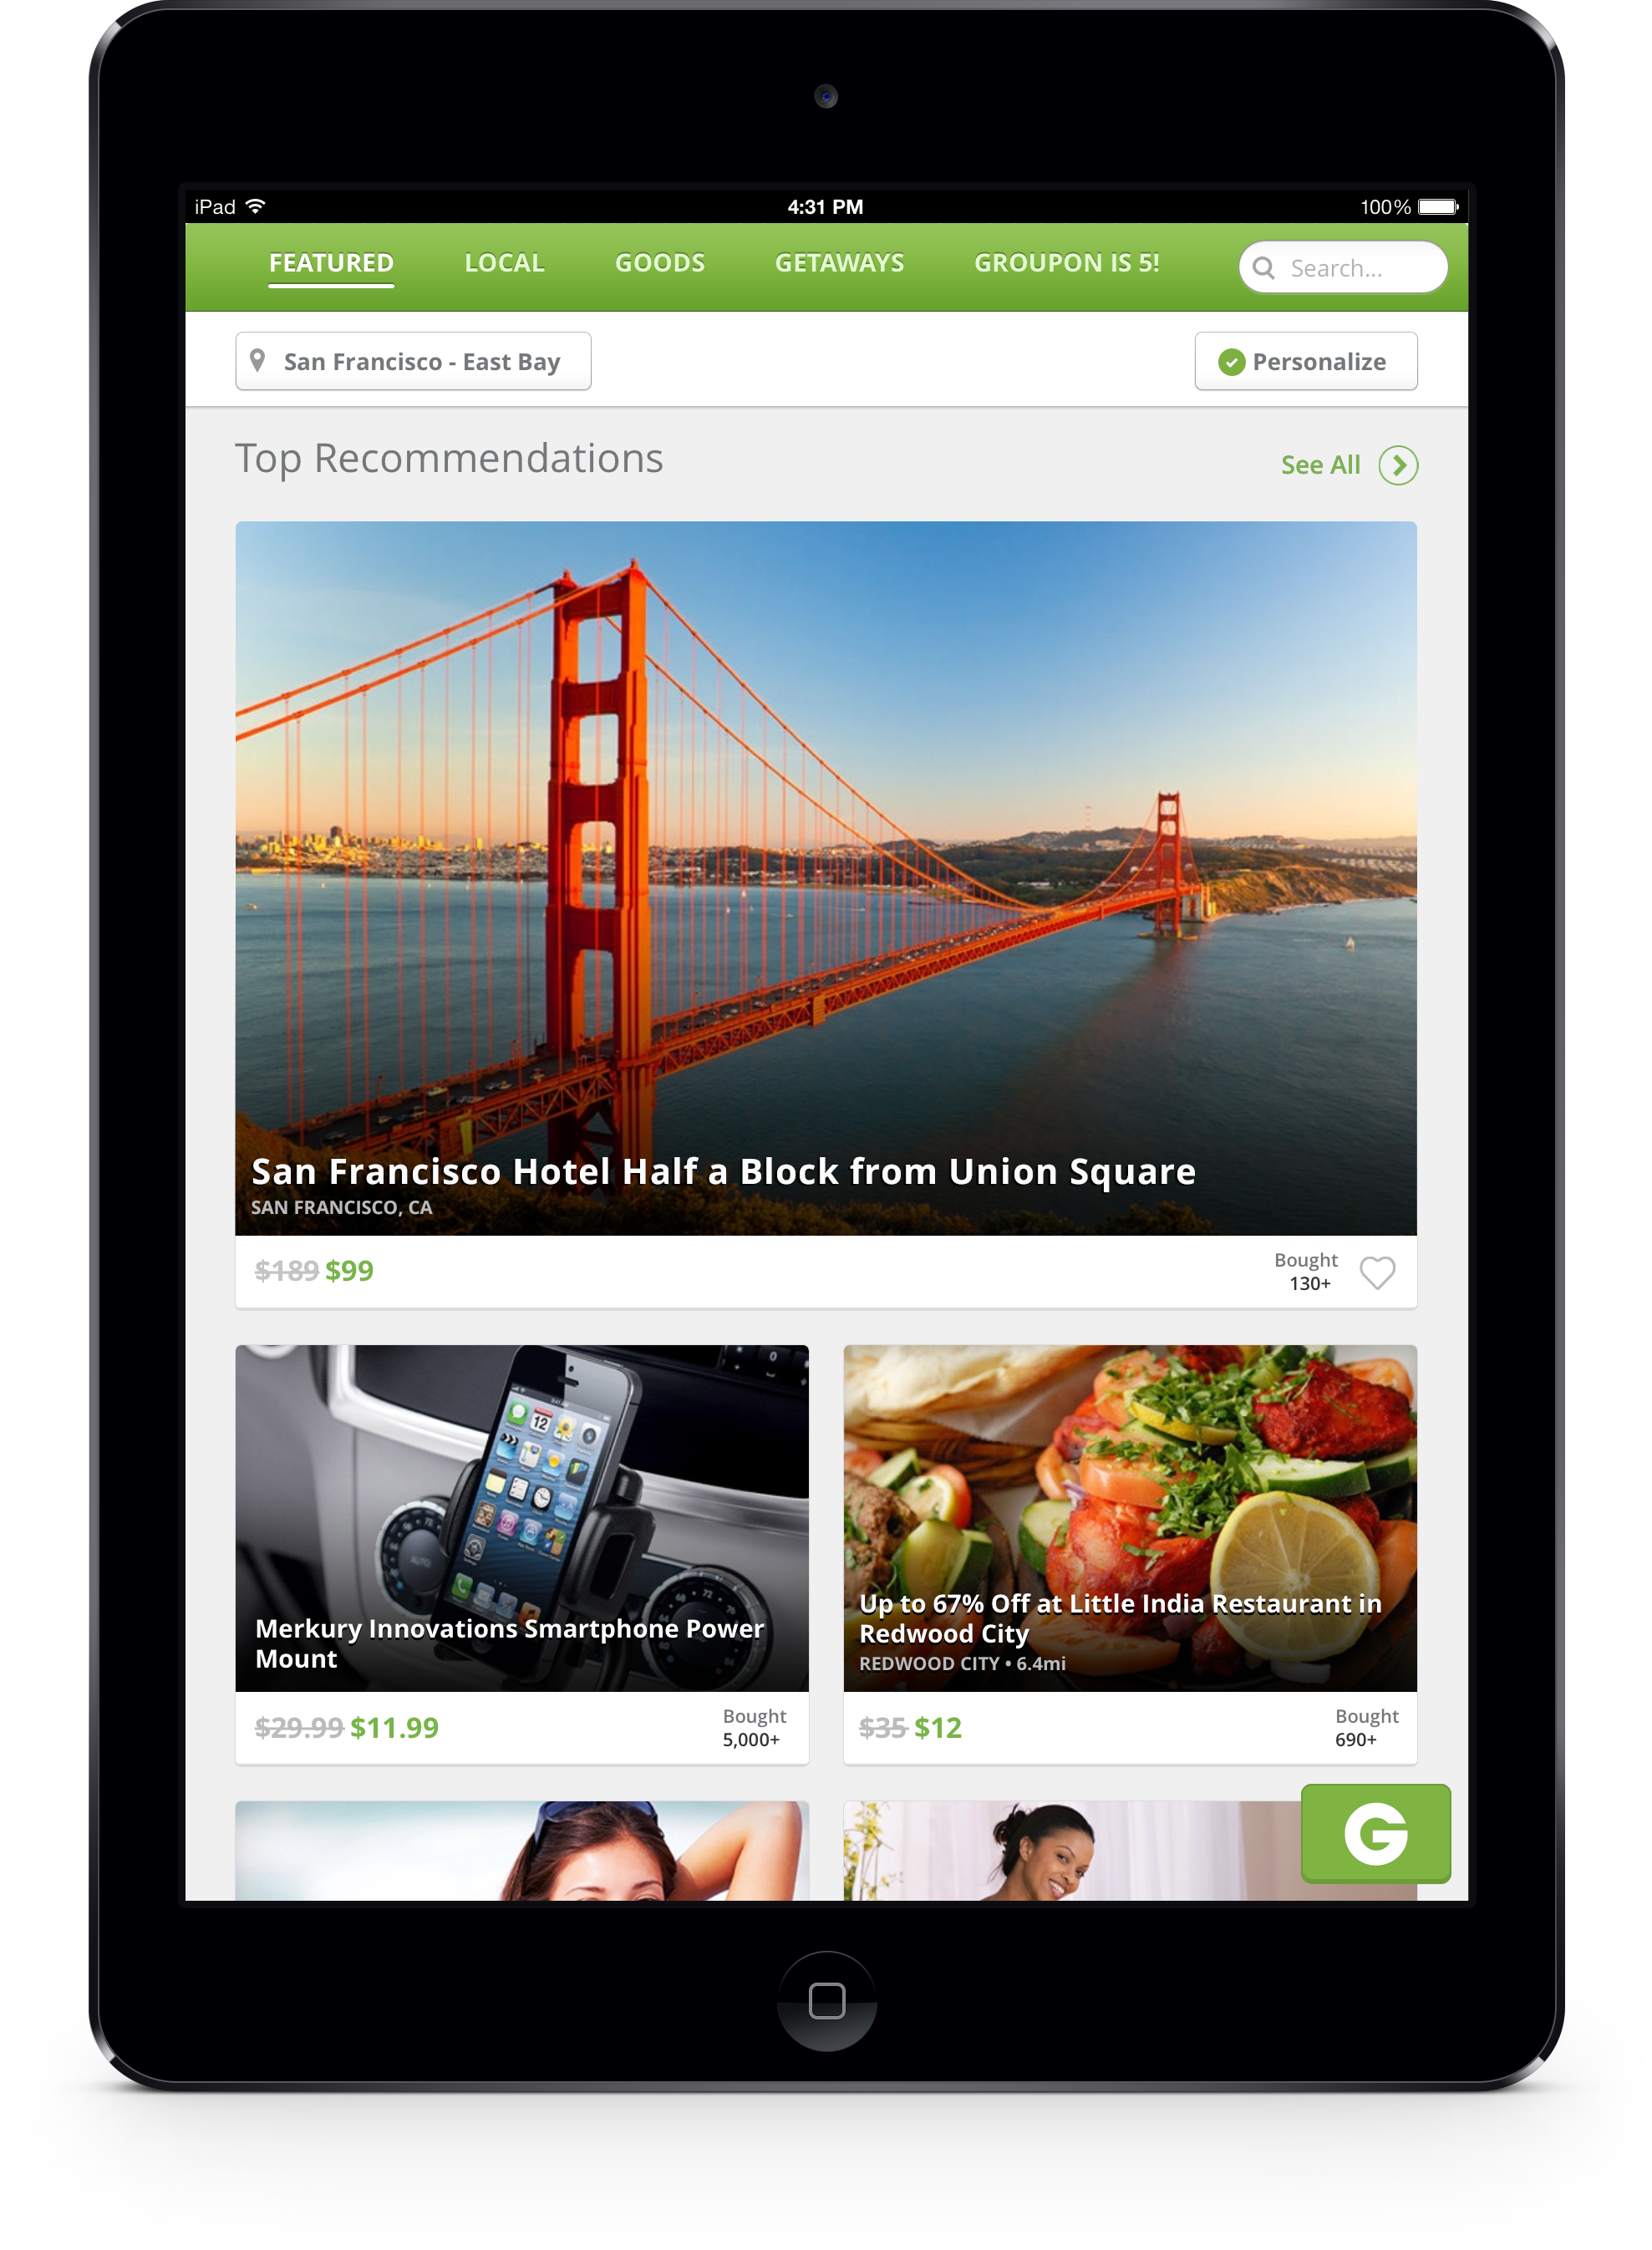 Groupon Revamps Its Website And Updates Mobile Apps